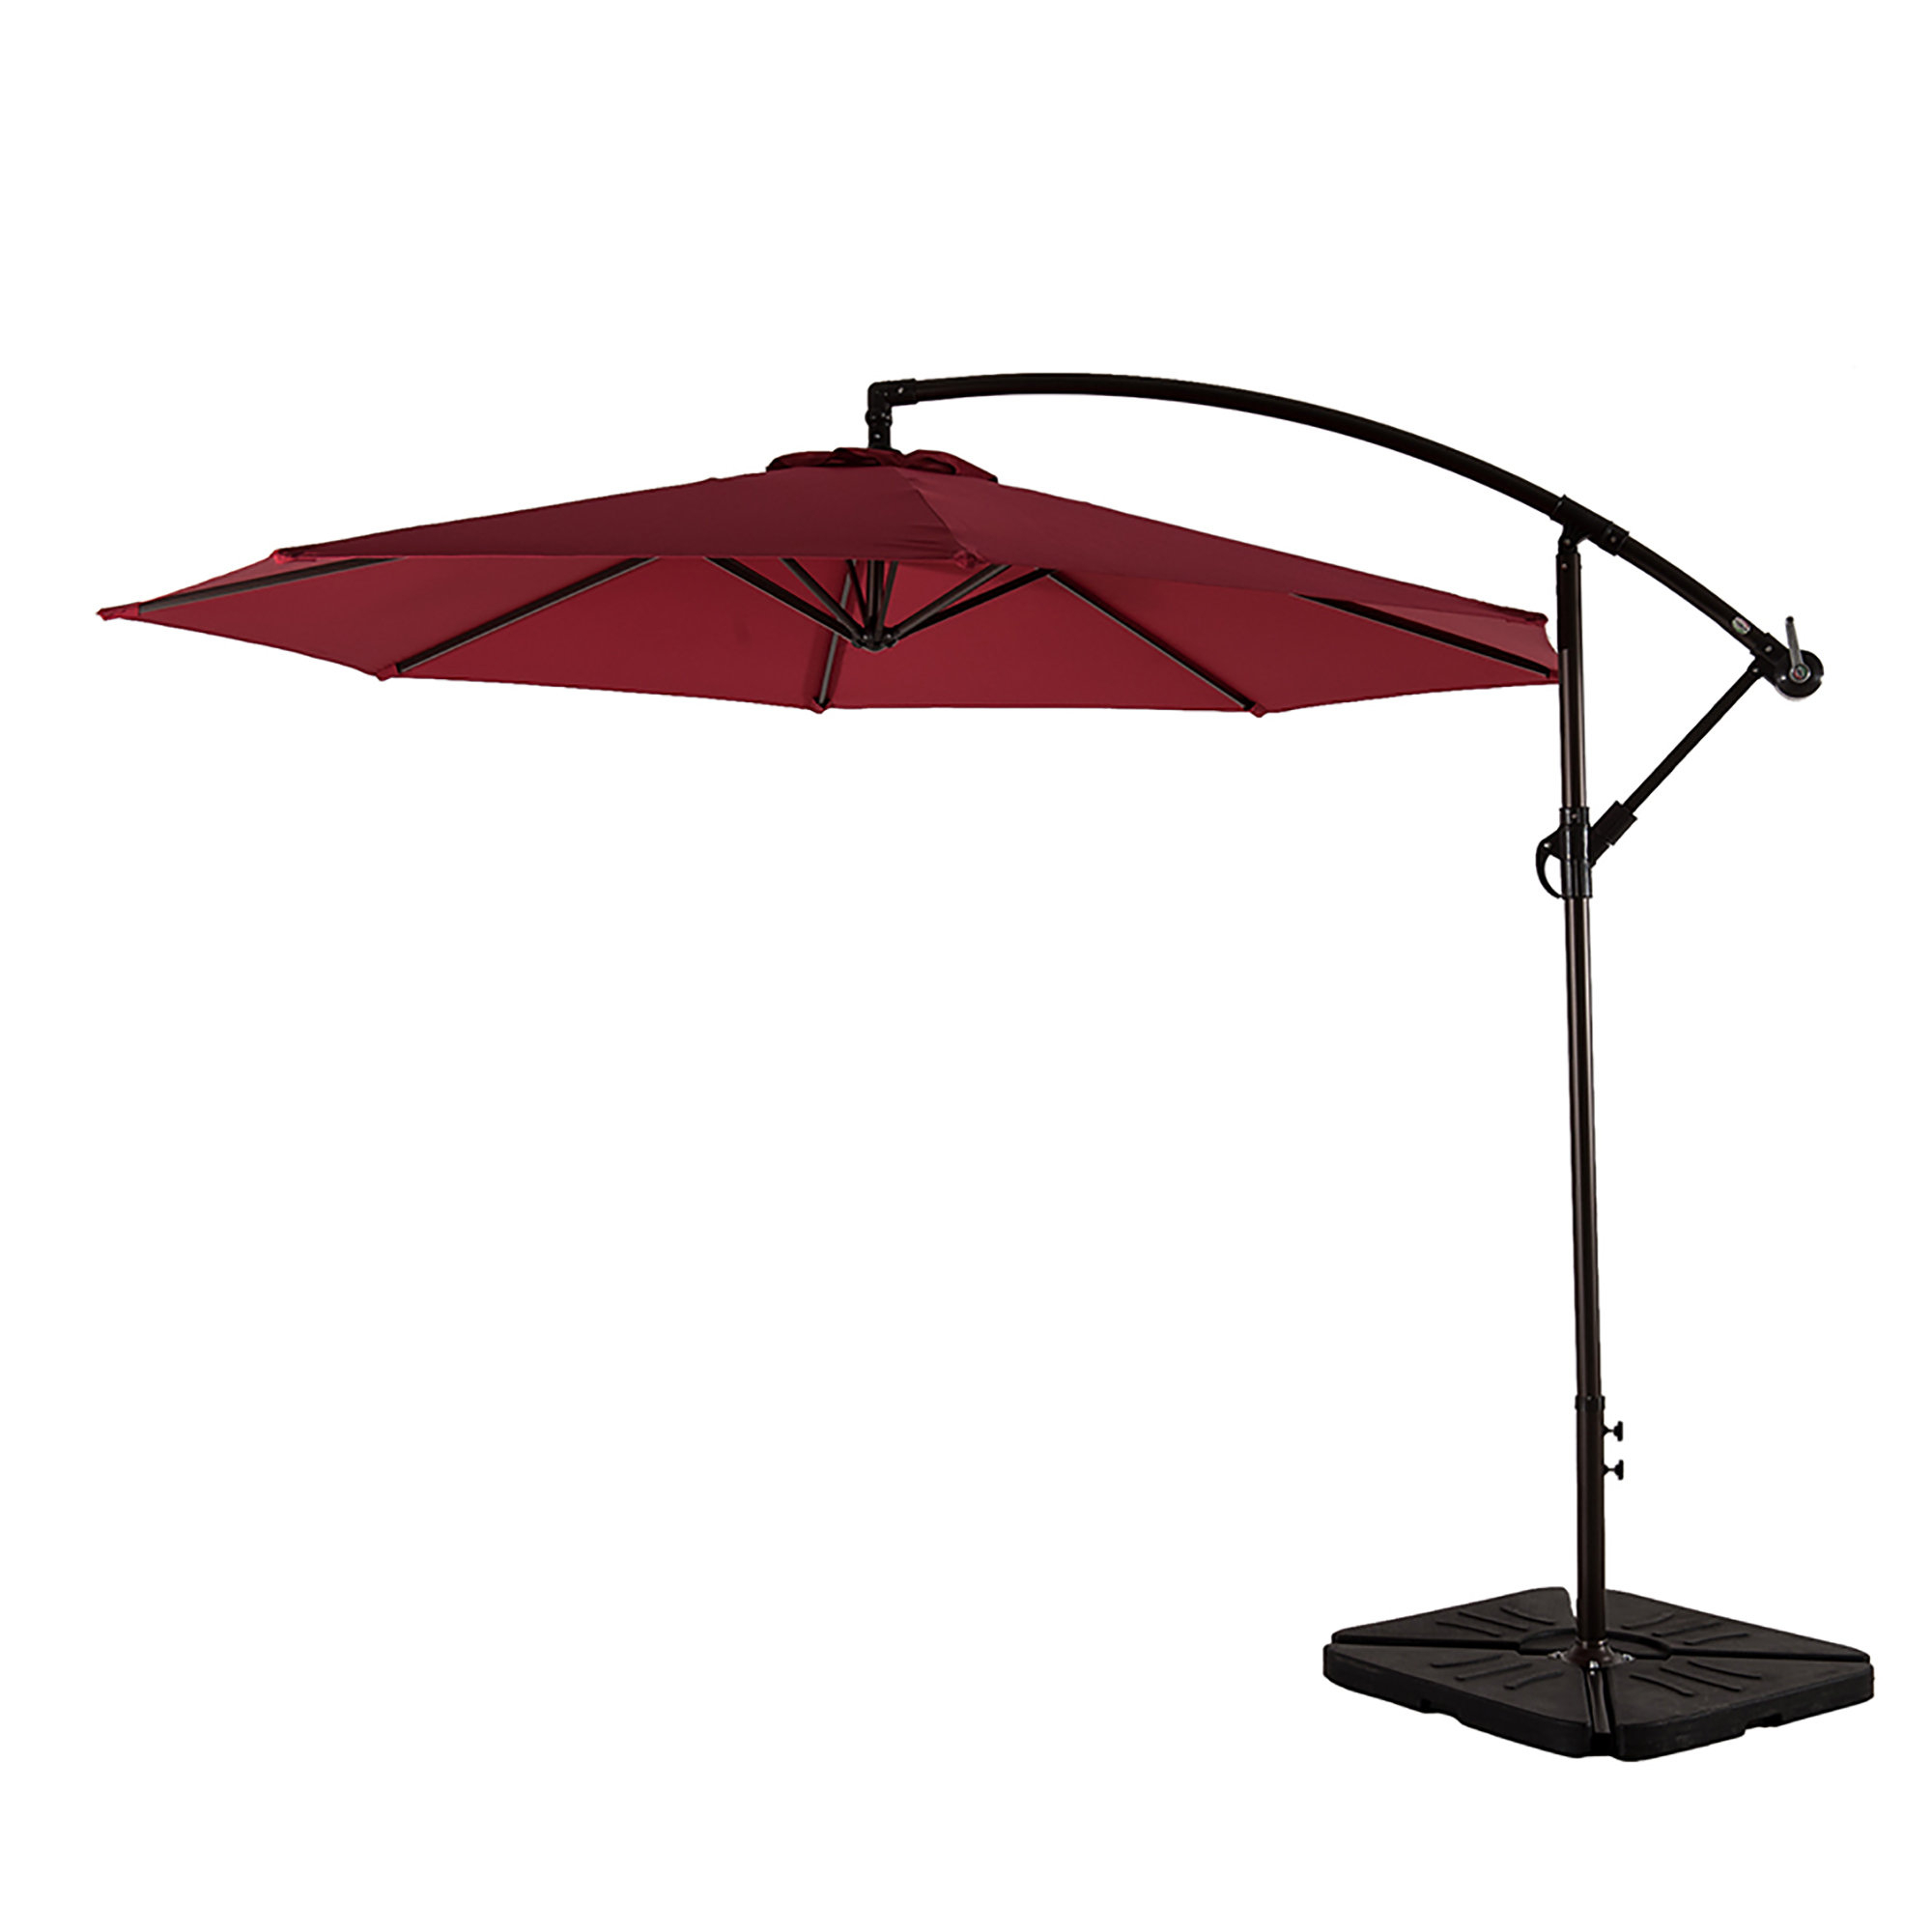 Karr 10' Cantilever Umbrella Intended For 2019 Bormann Cantilever Umbrellas (View 10 of 20)